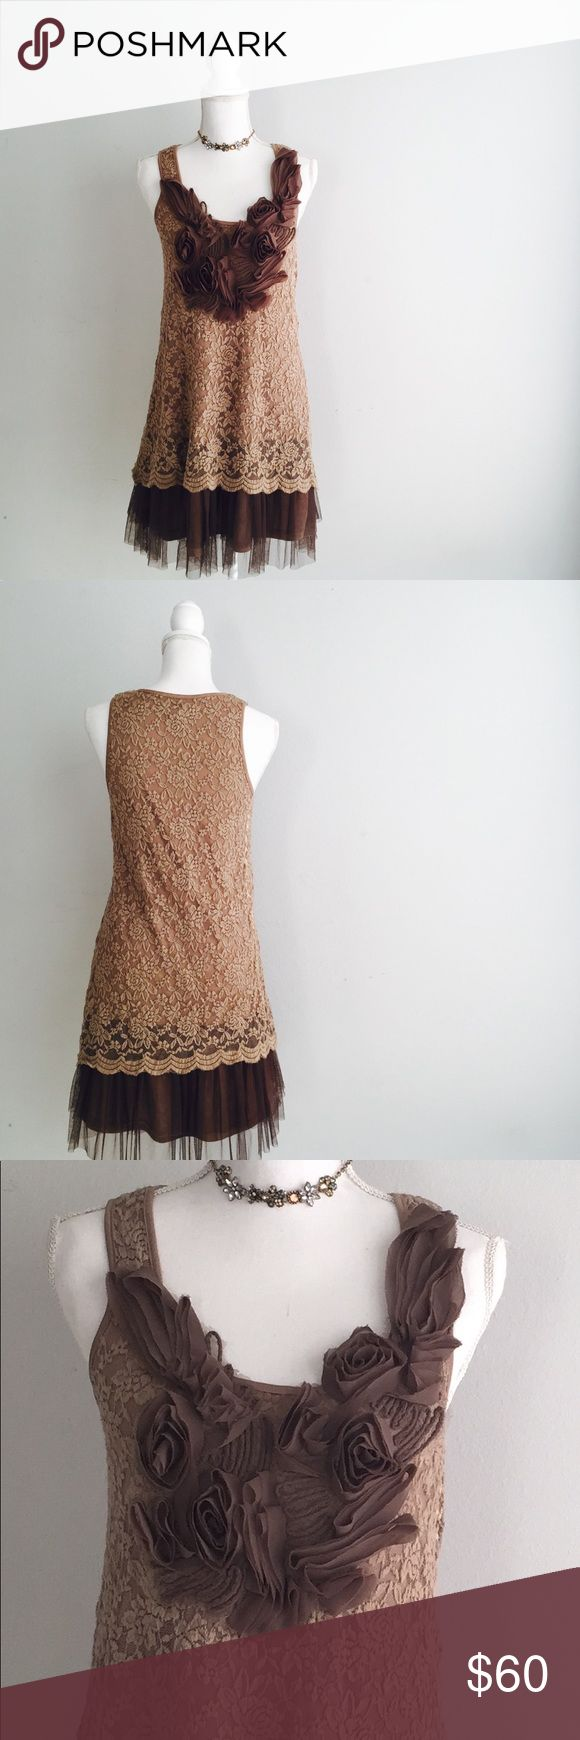 Ryu anthropologie tulle lace floral dress small Ryu previously sold at anthropologie and modcloth etc  brown/tan lace dress tulle hem and tulle flowers on the bust  so shabby cottage chic! Great pre loved condition  Size small Anthropologie Dresses